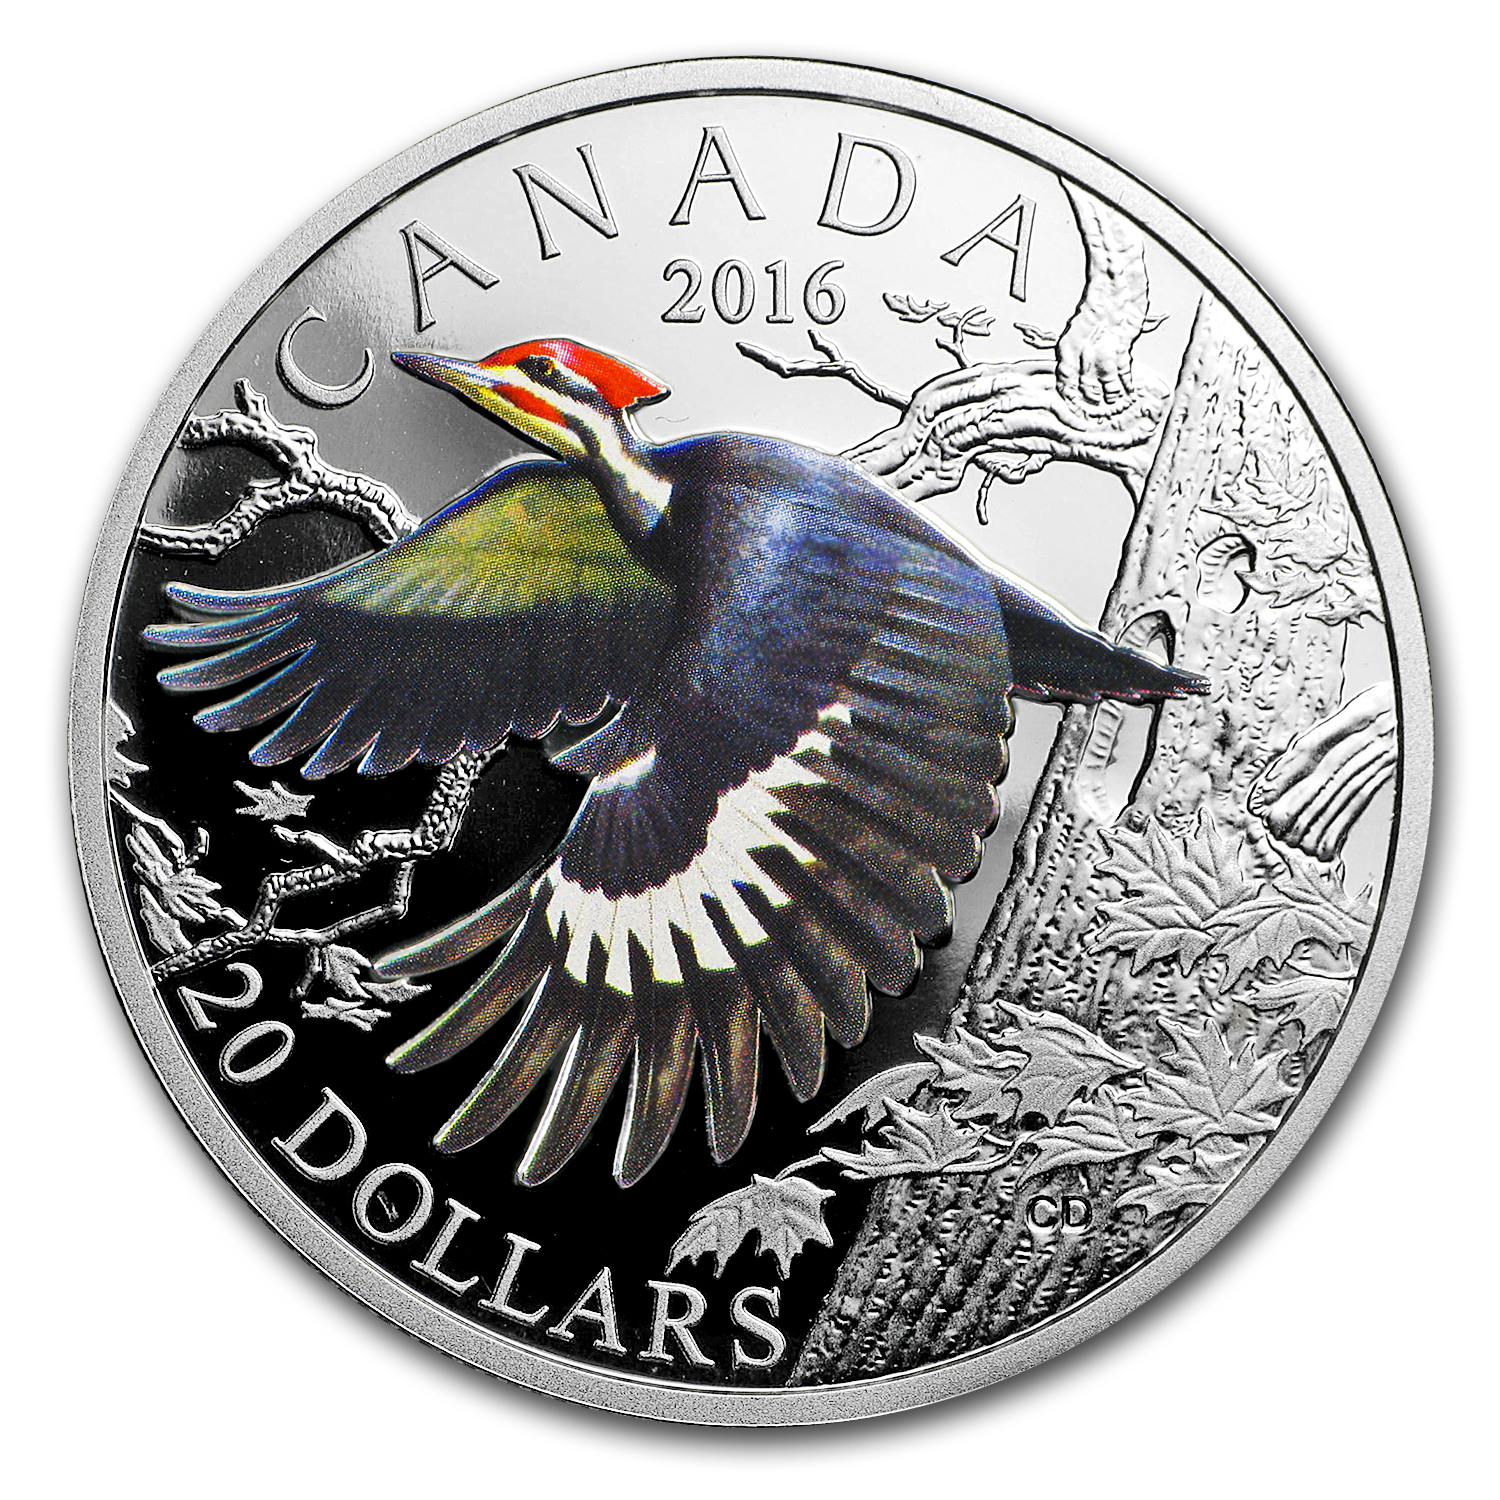 2016 Canada 1 oz Silver Migratory Birds (Pileated Woodpecker)